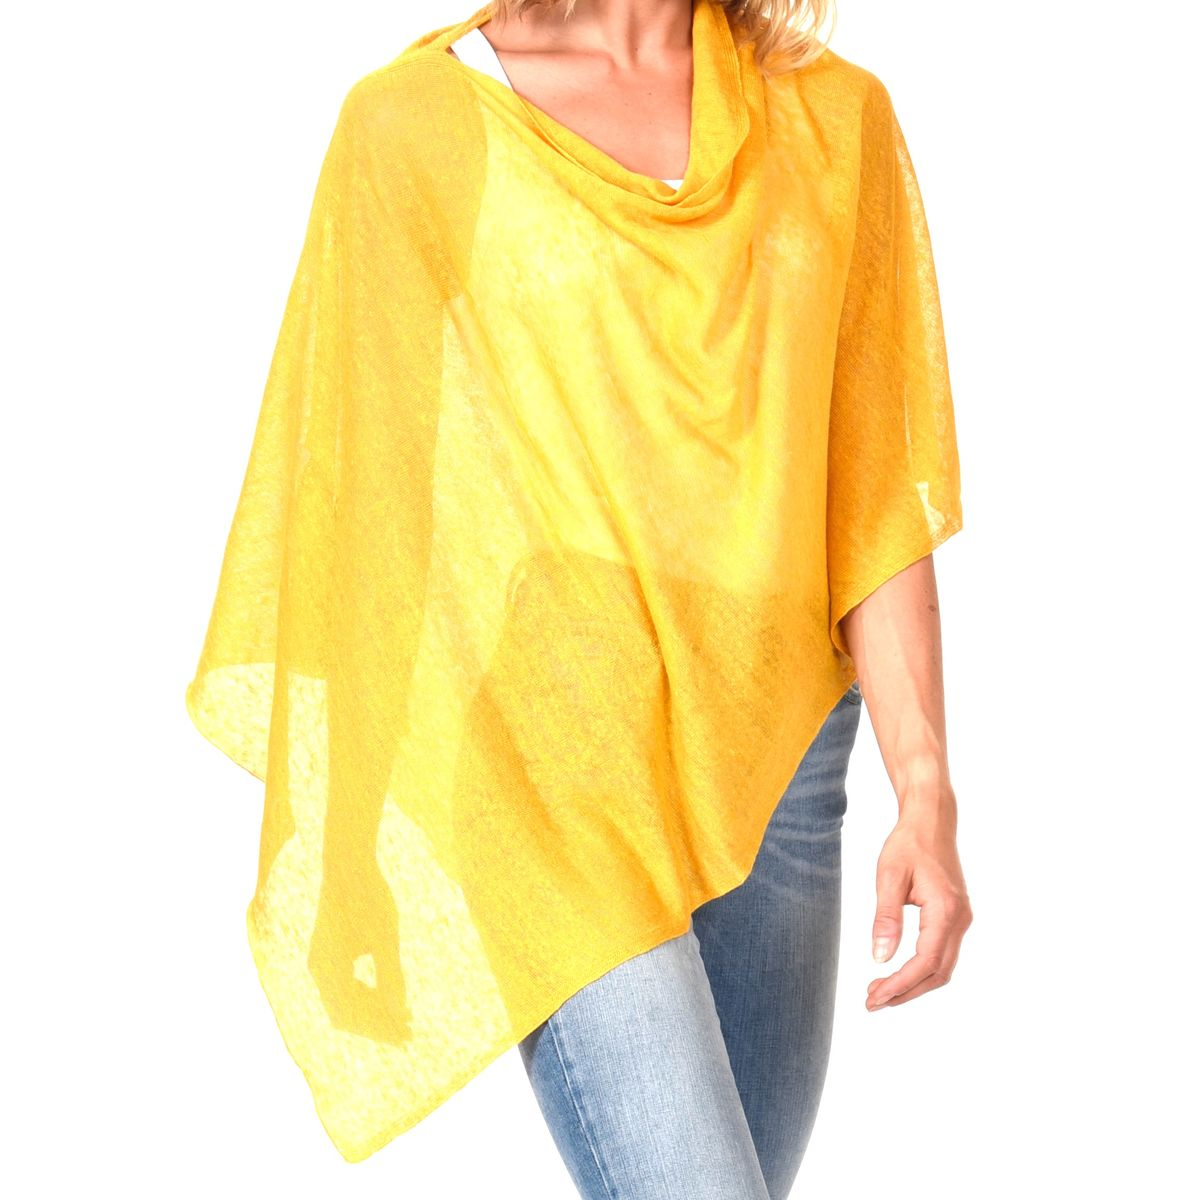 Poncho 100% Linen - Orzo - product image